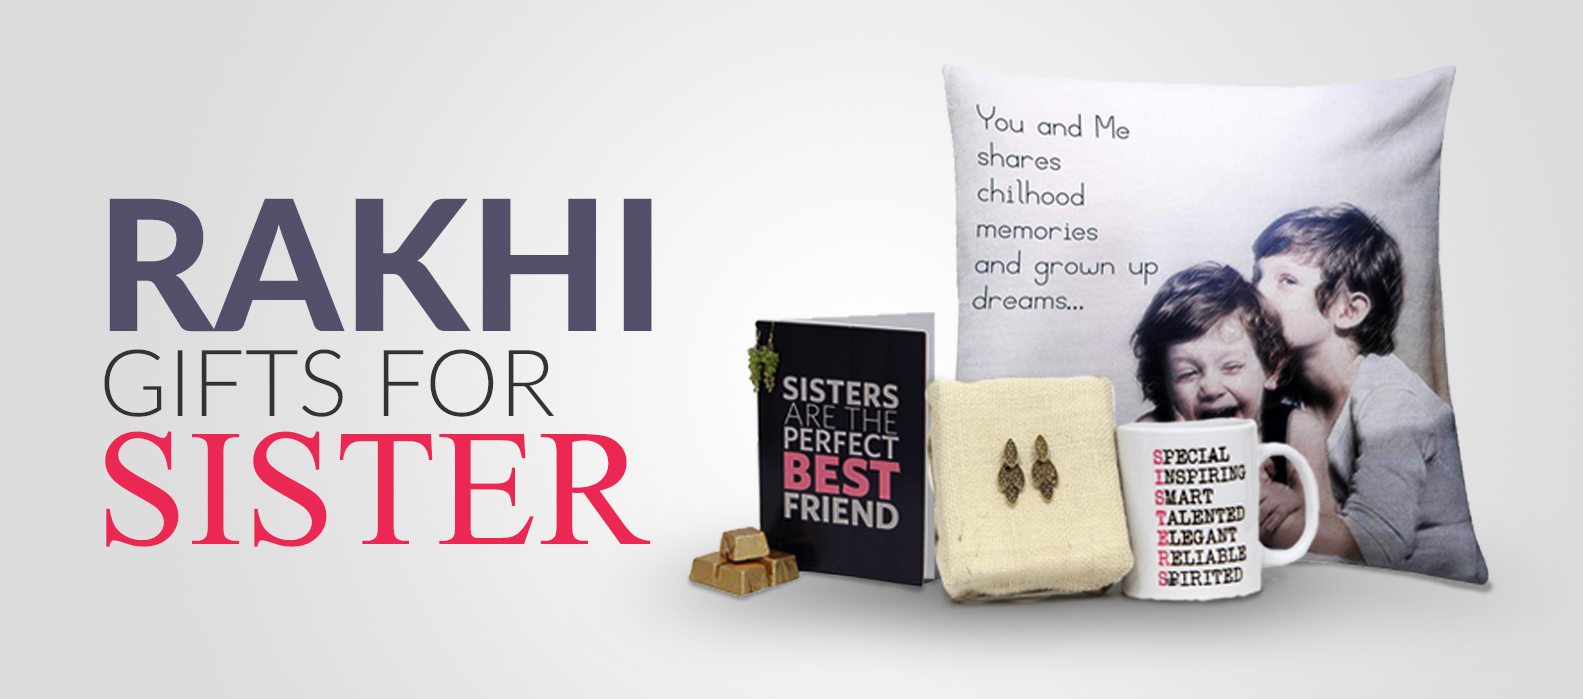 Rakhi-Gifts-for-Sister_1583x699